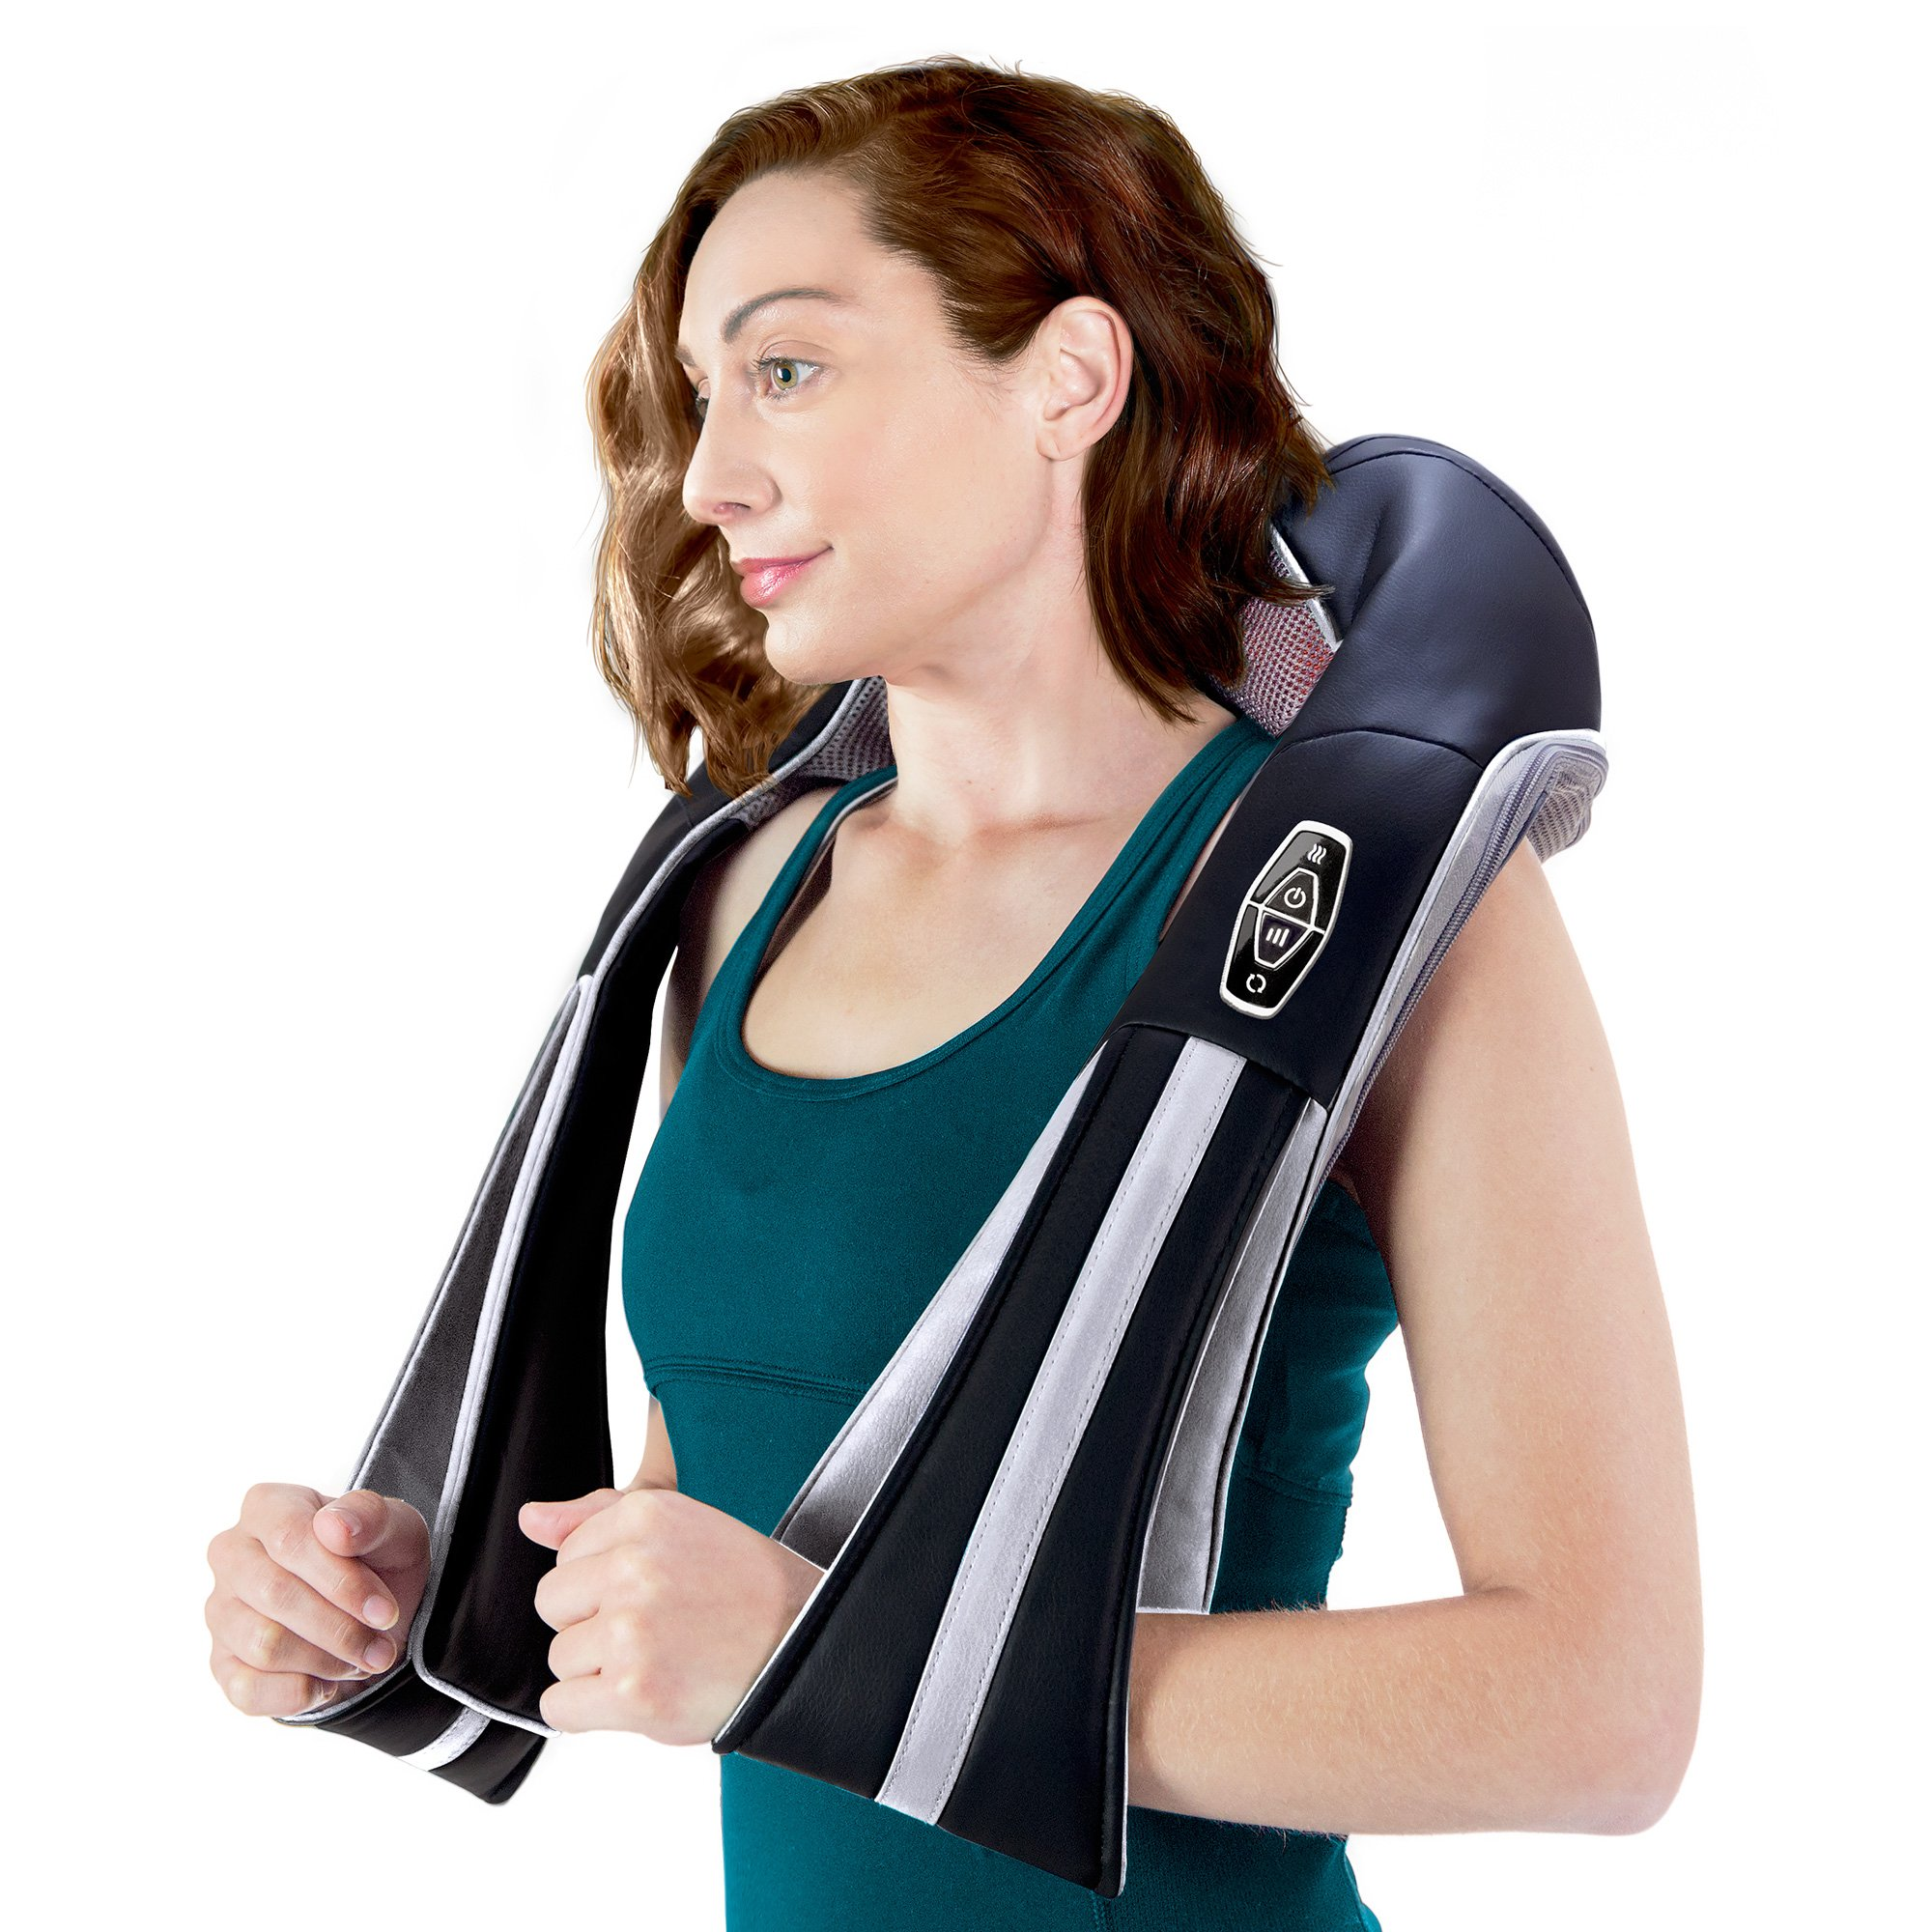 InstaShiatsu+ Neck, Shoulder & Full Body Massager with Heat, Model # IS-3000PRO, 3 Massage Speeds, Cordless & Rechargeable, Use at Home & Office, by TruMedic by truMedic (Image #3)